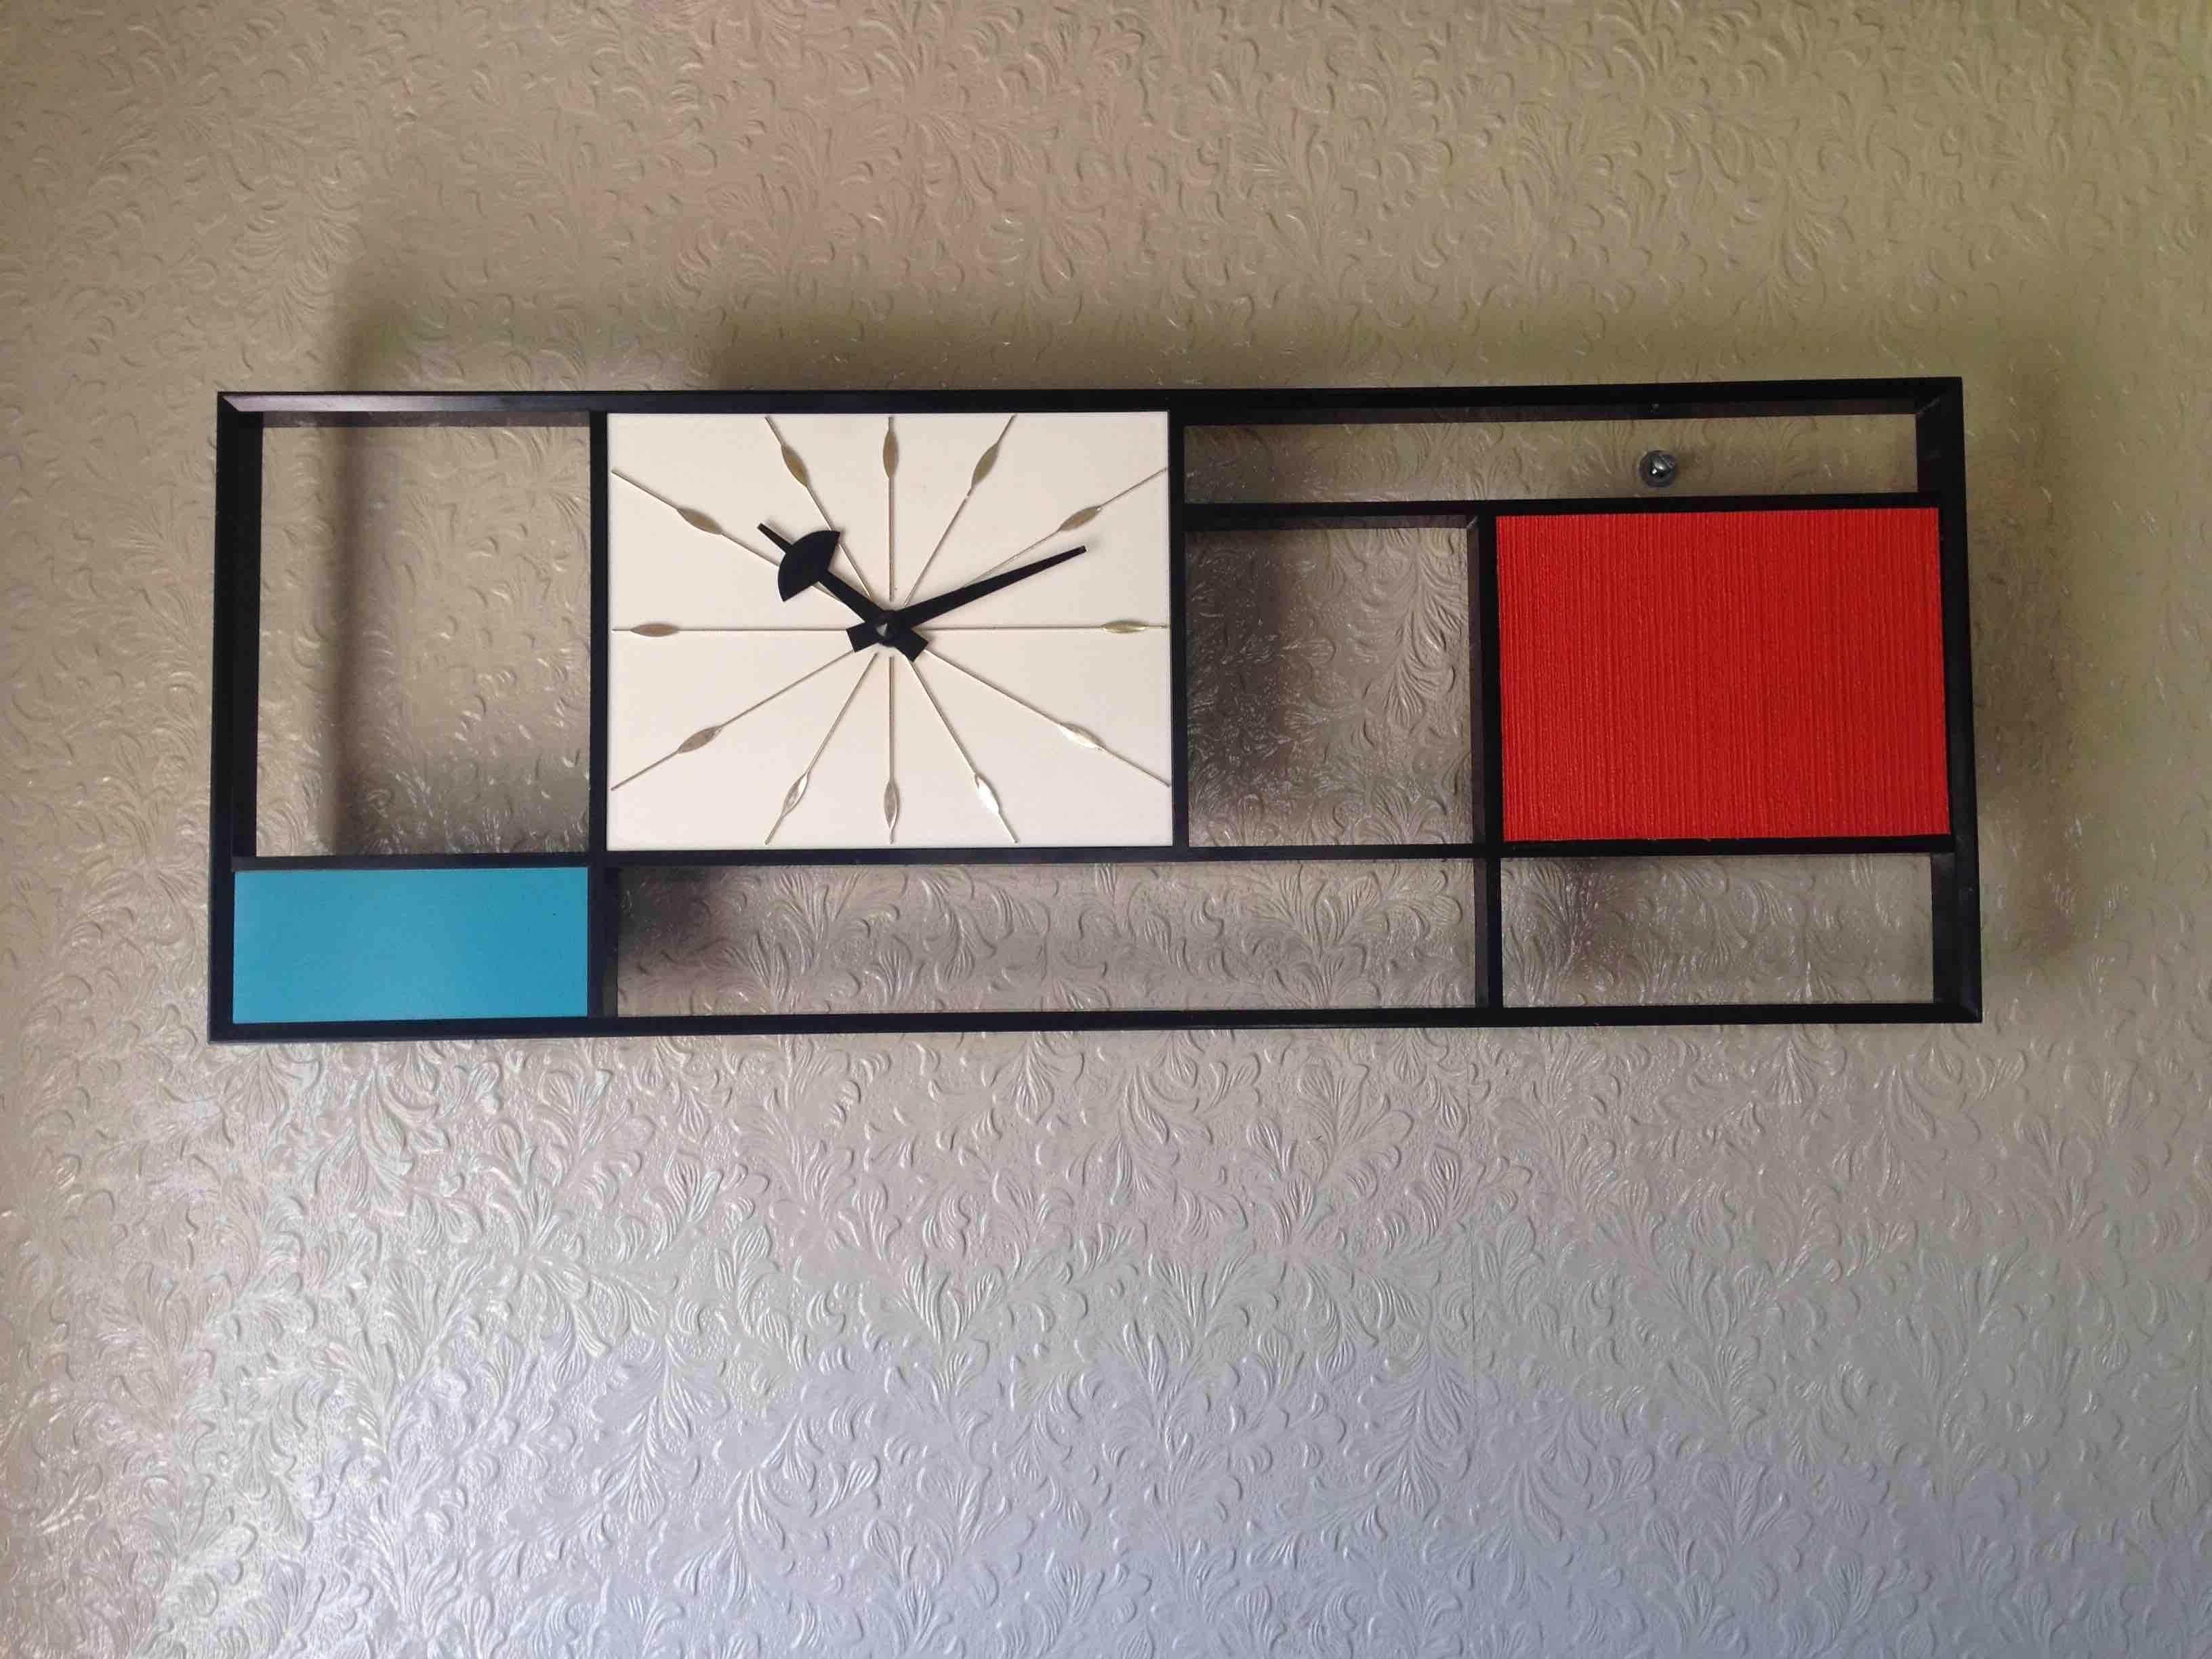 Mondrian Wall Mondrian Wall Clock From Sunbeam Wanted Iconic Pieces